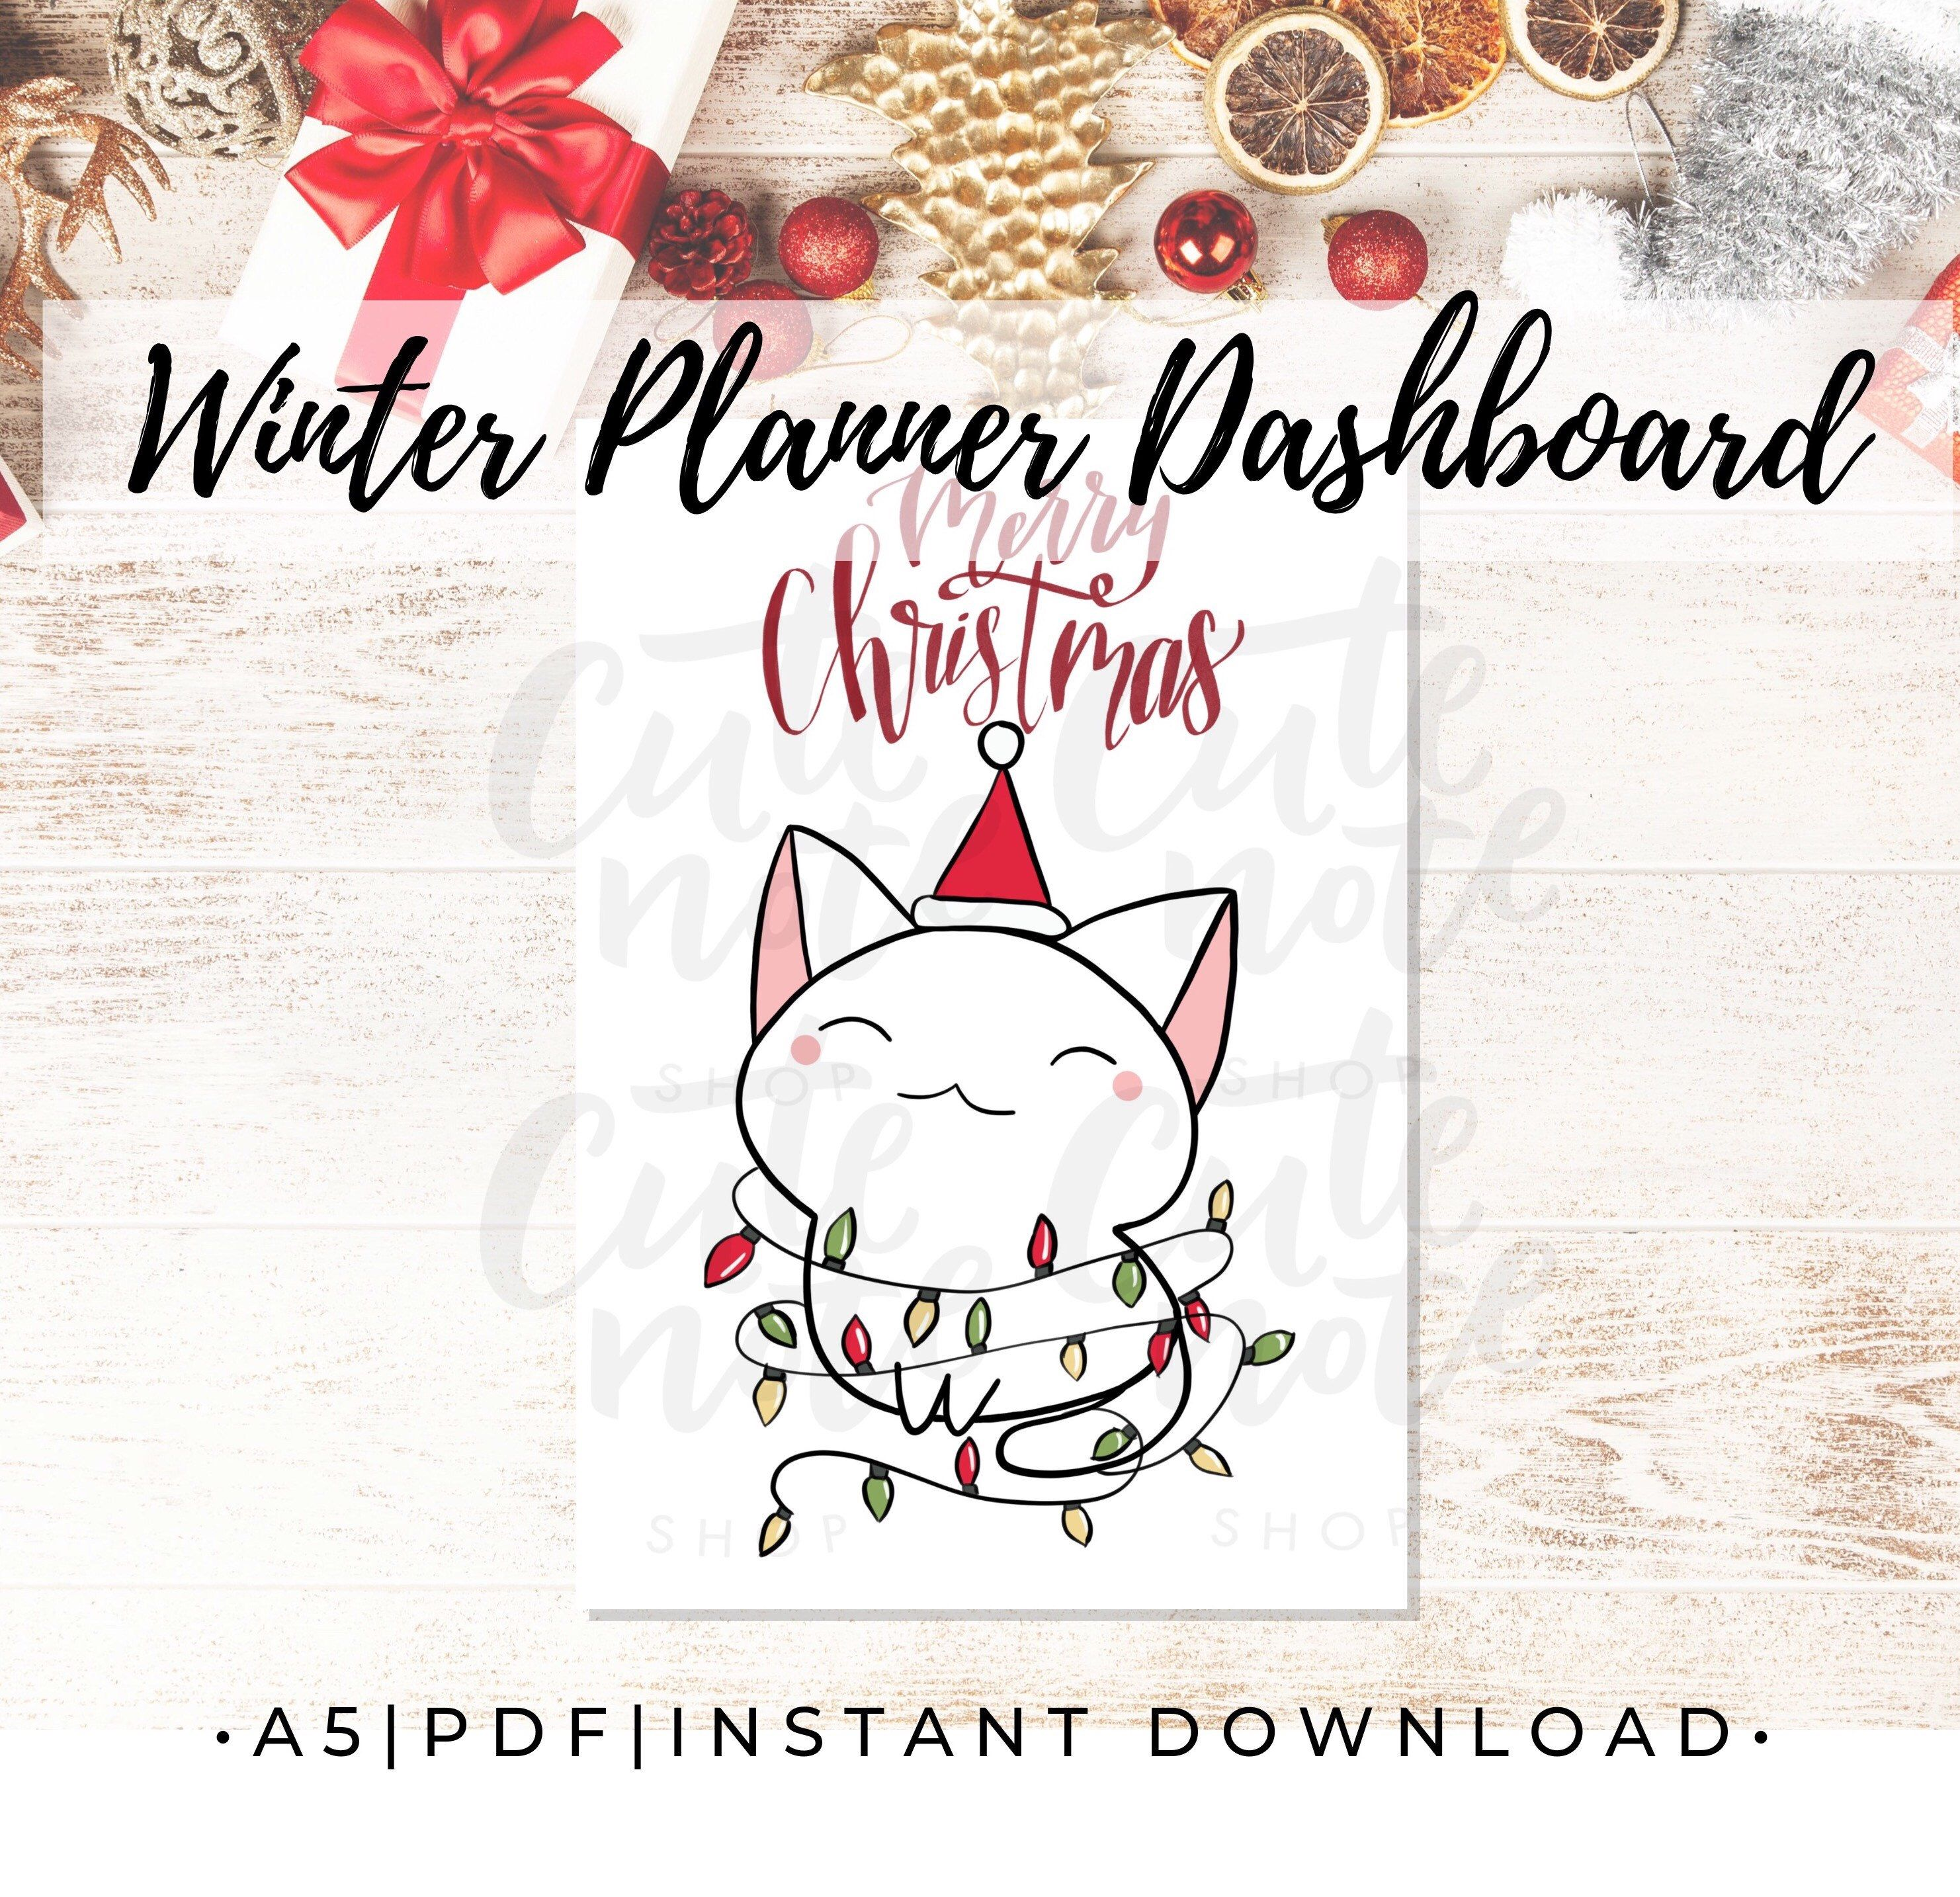 A5 Christmas Cat Planner Dashboard Printable A5 Planner Etsy In 2020 Christmas Planner Free A5 Planner Planner